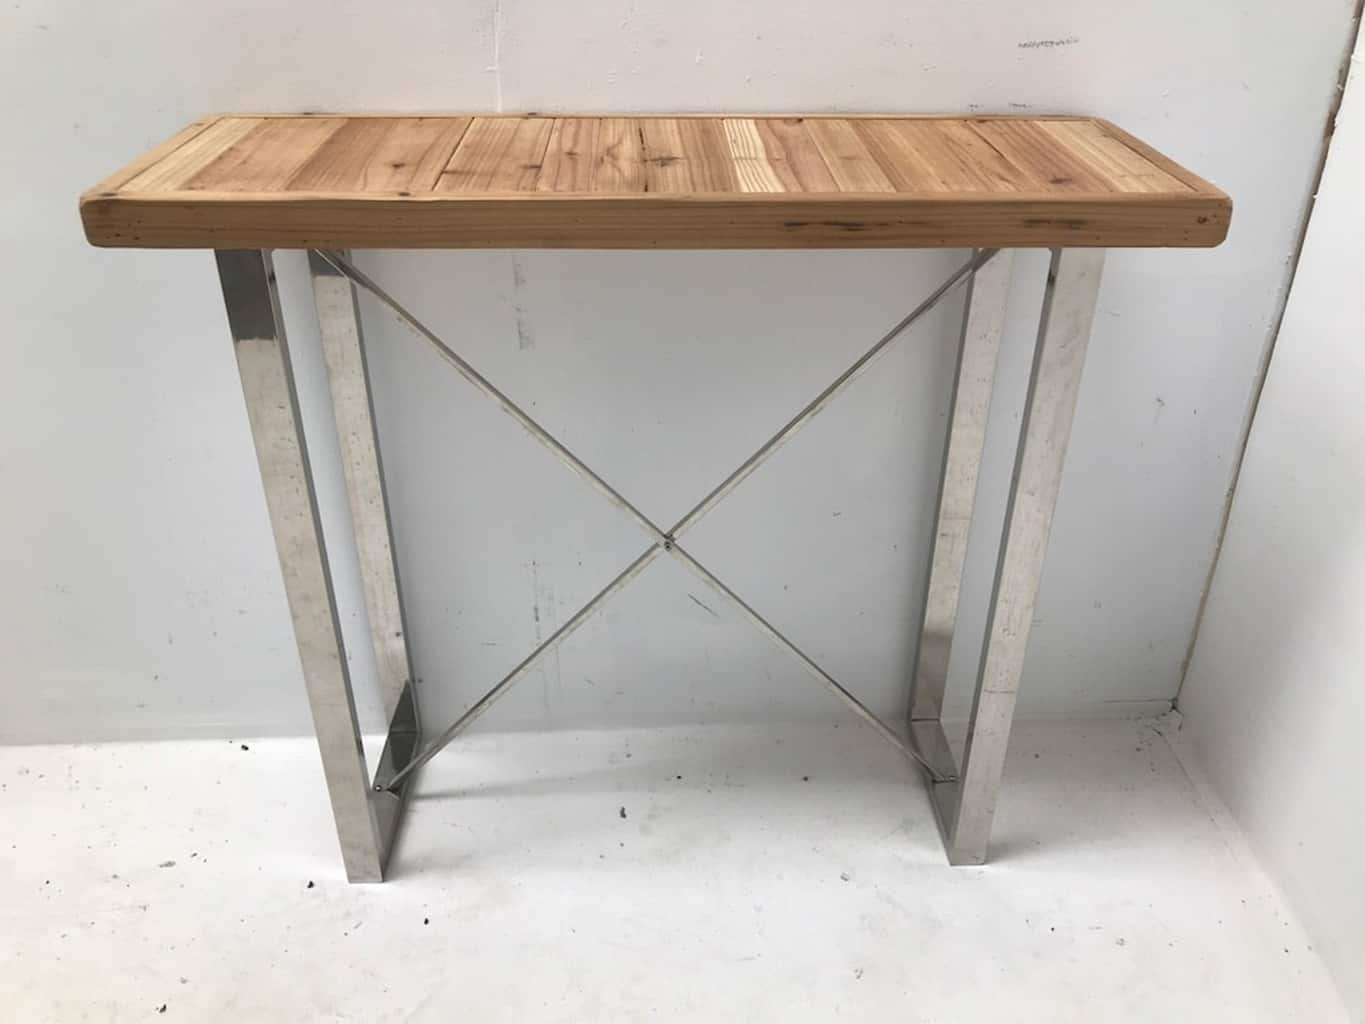 Slim console table, wooden top, steel legs